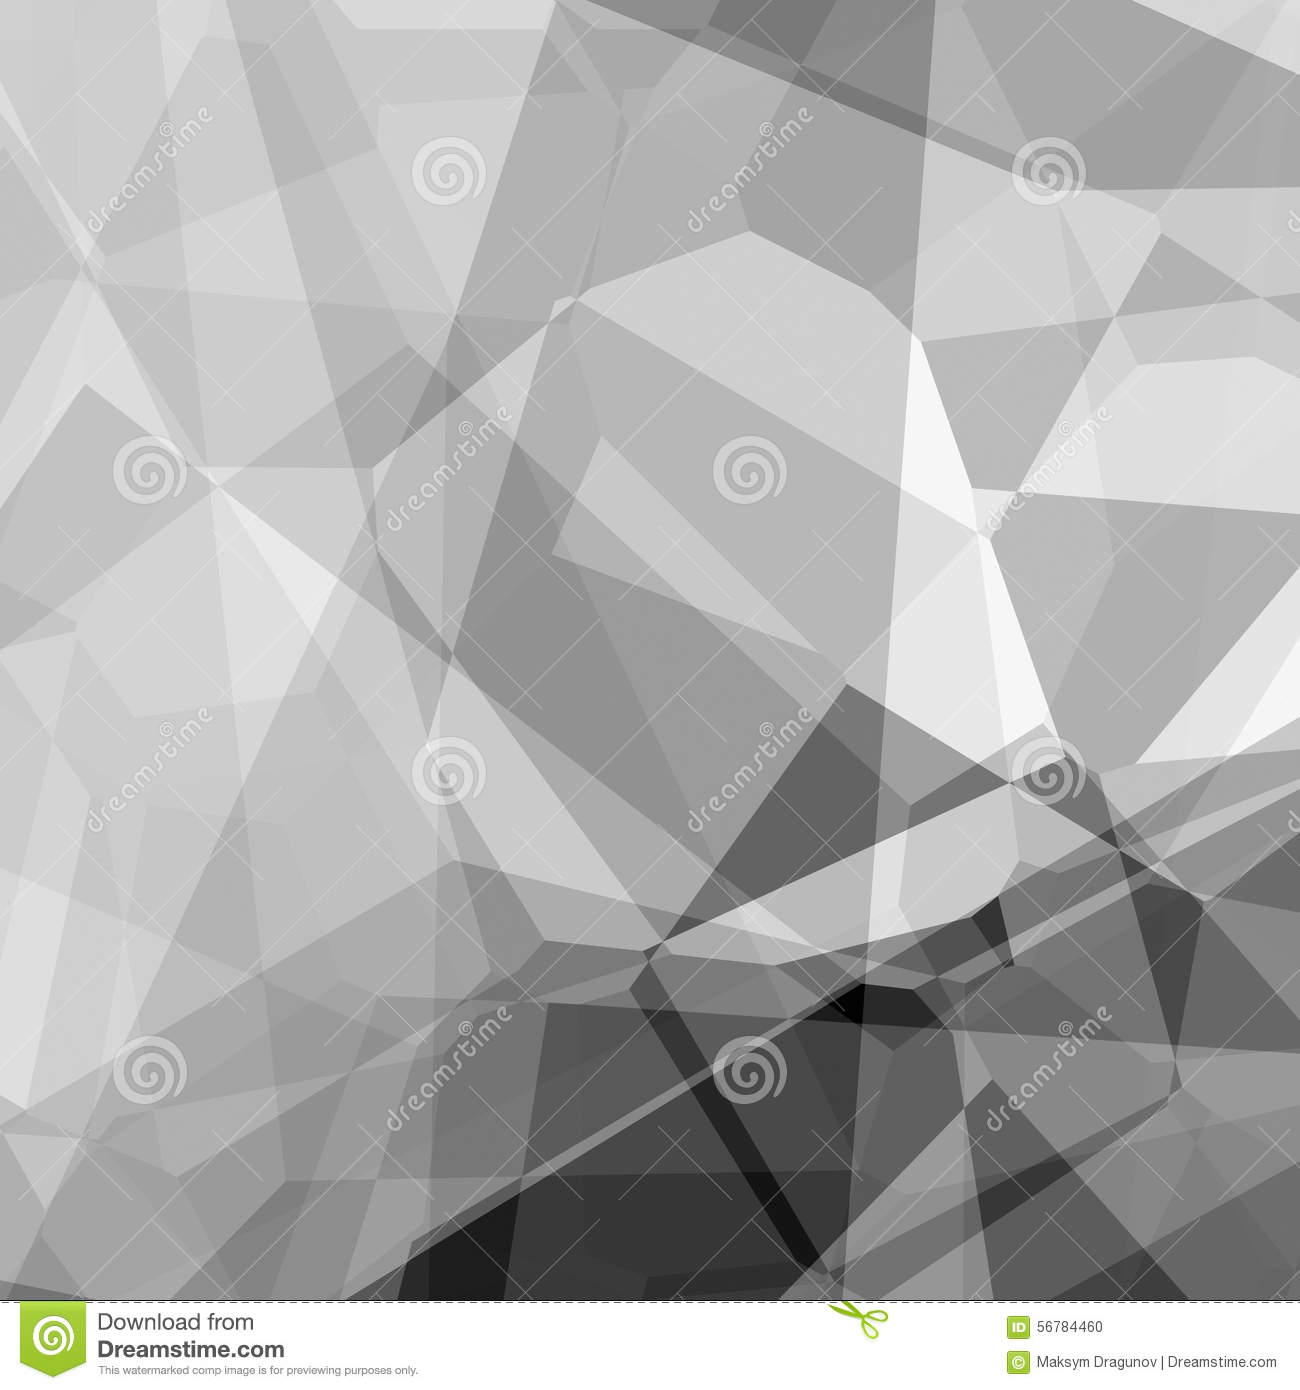 Background image grayscale - Abstract Background Grayscale